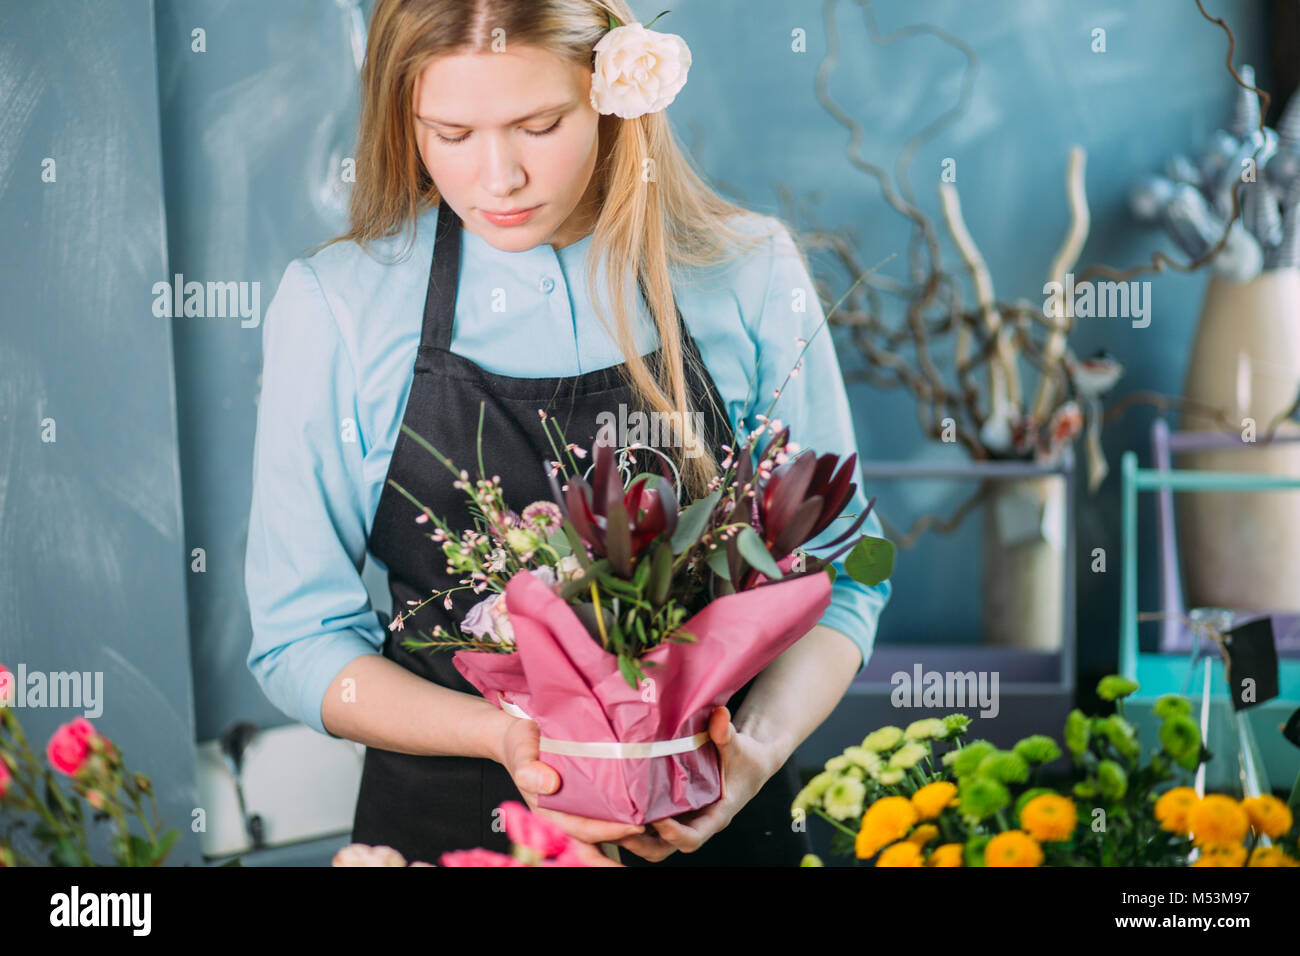 young florist displasing flowers on blue background - Stock Image